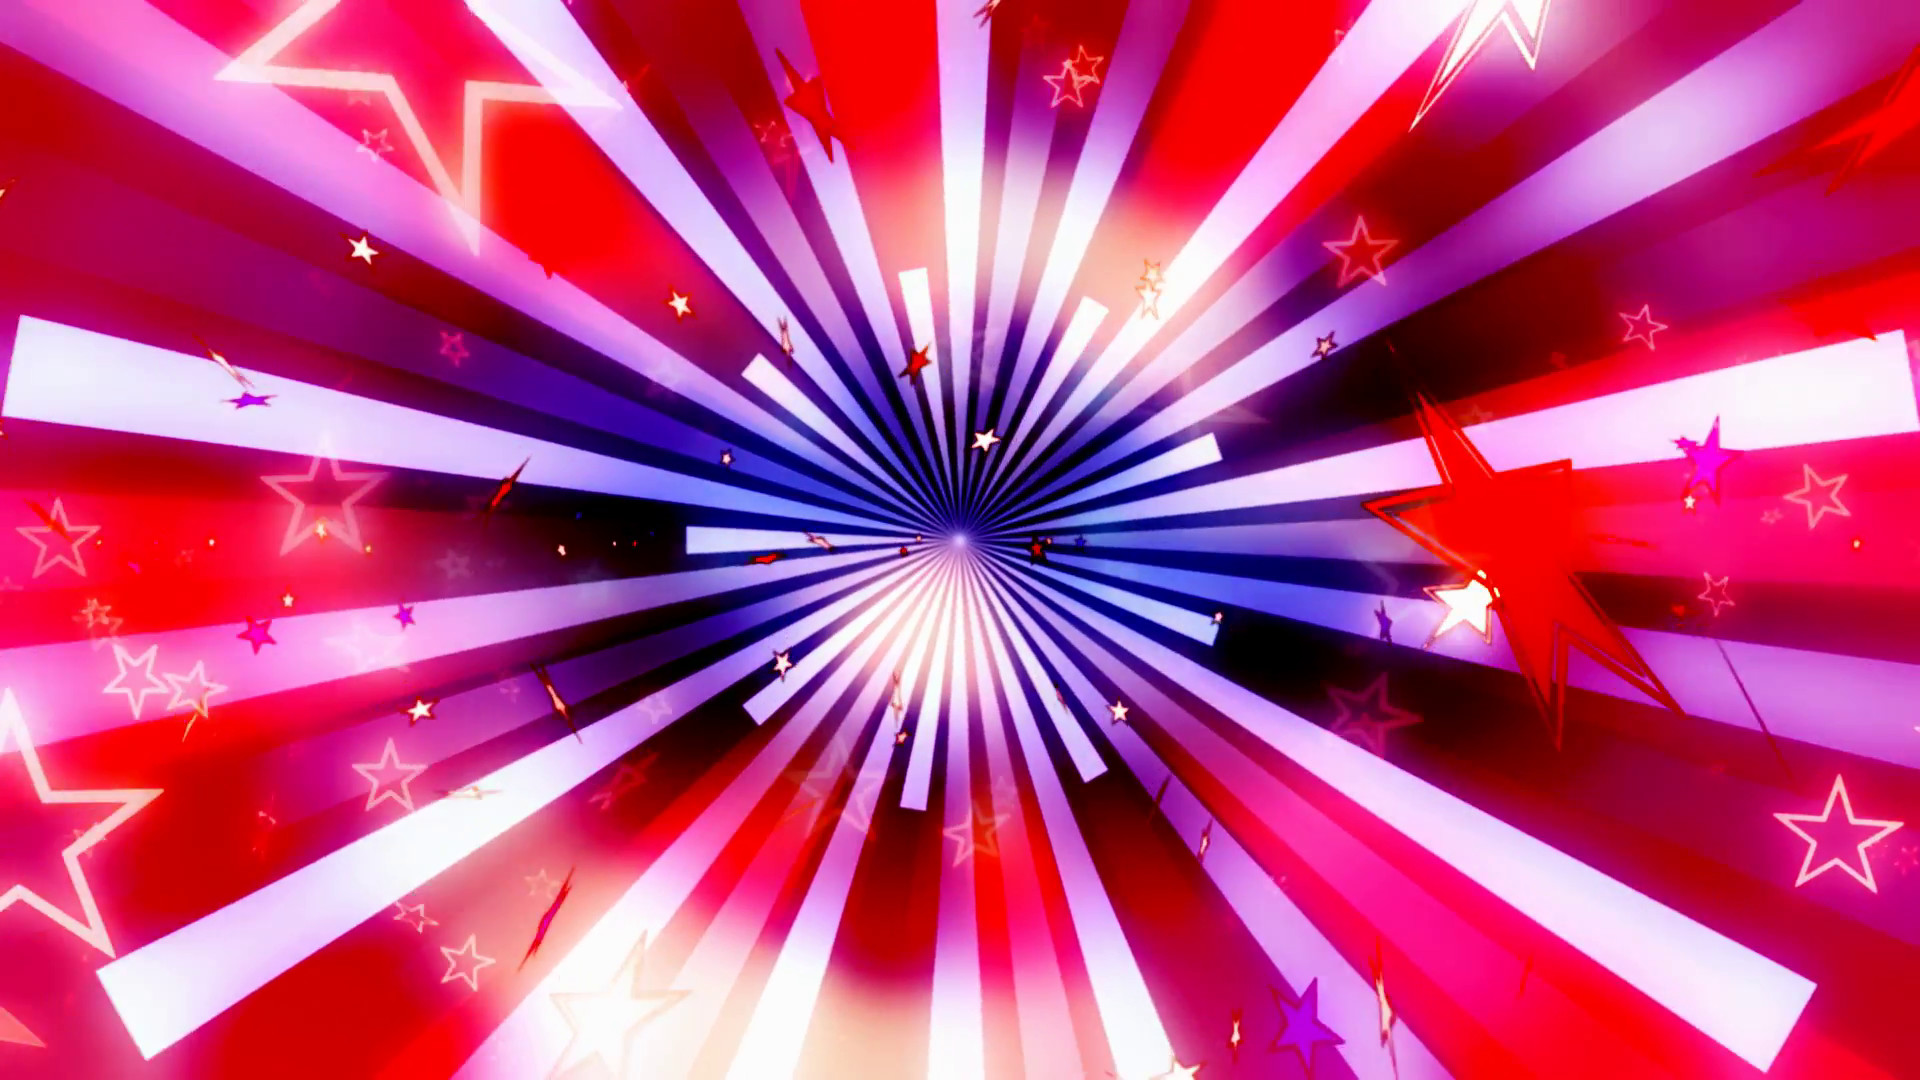 Red White and Blue Backgrounds ·① - photo#41